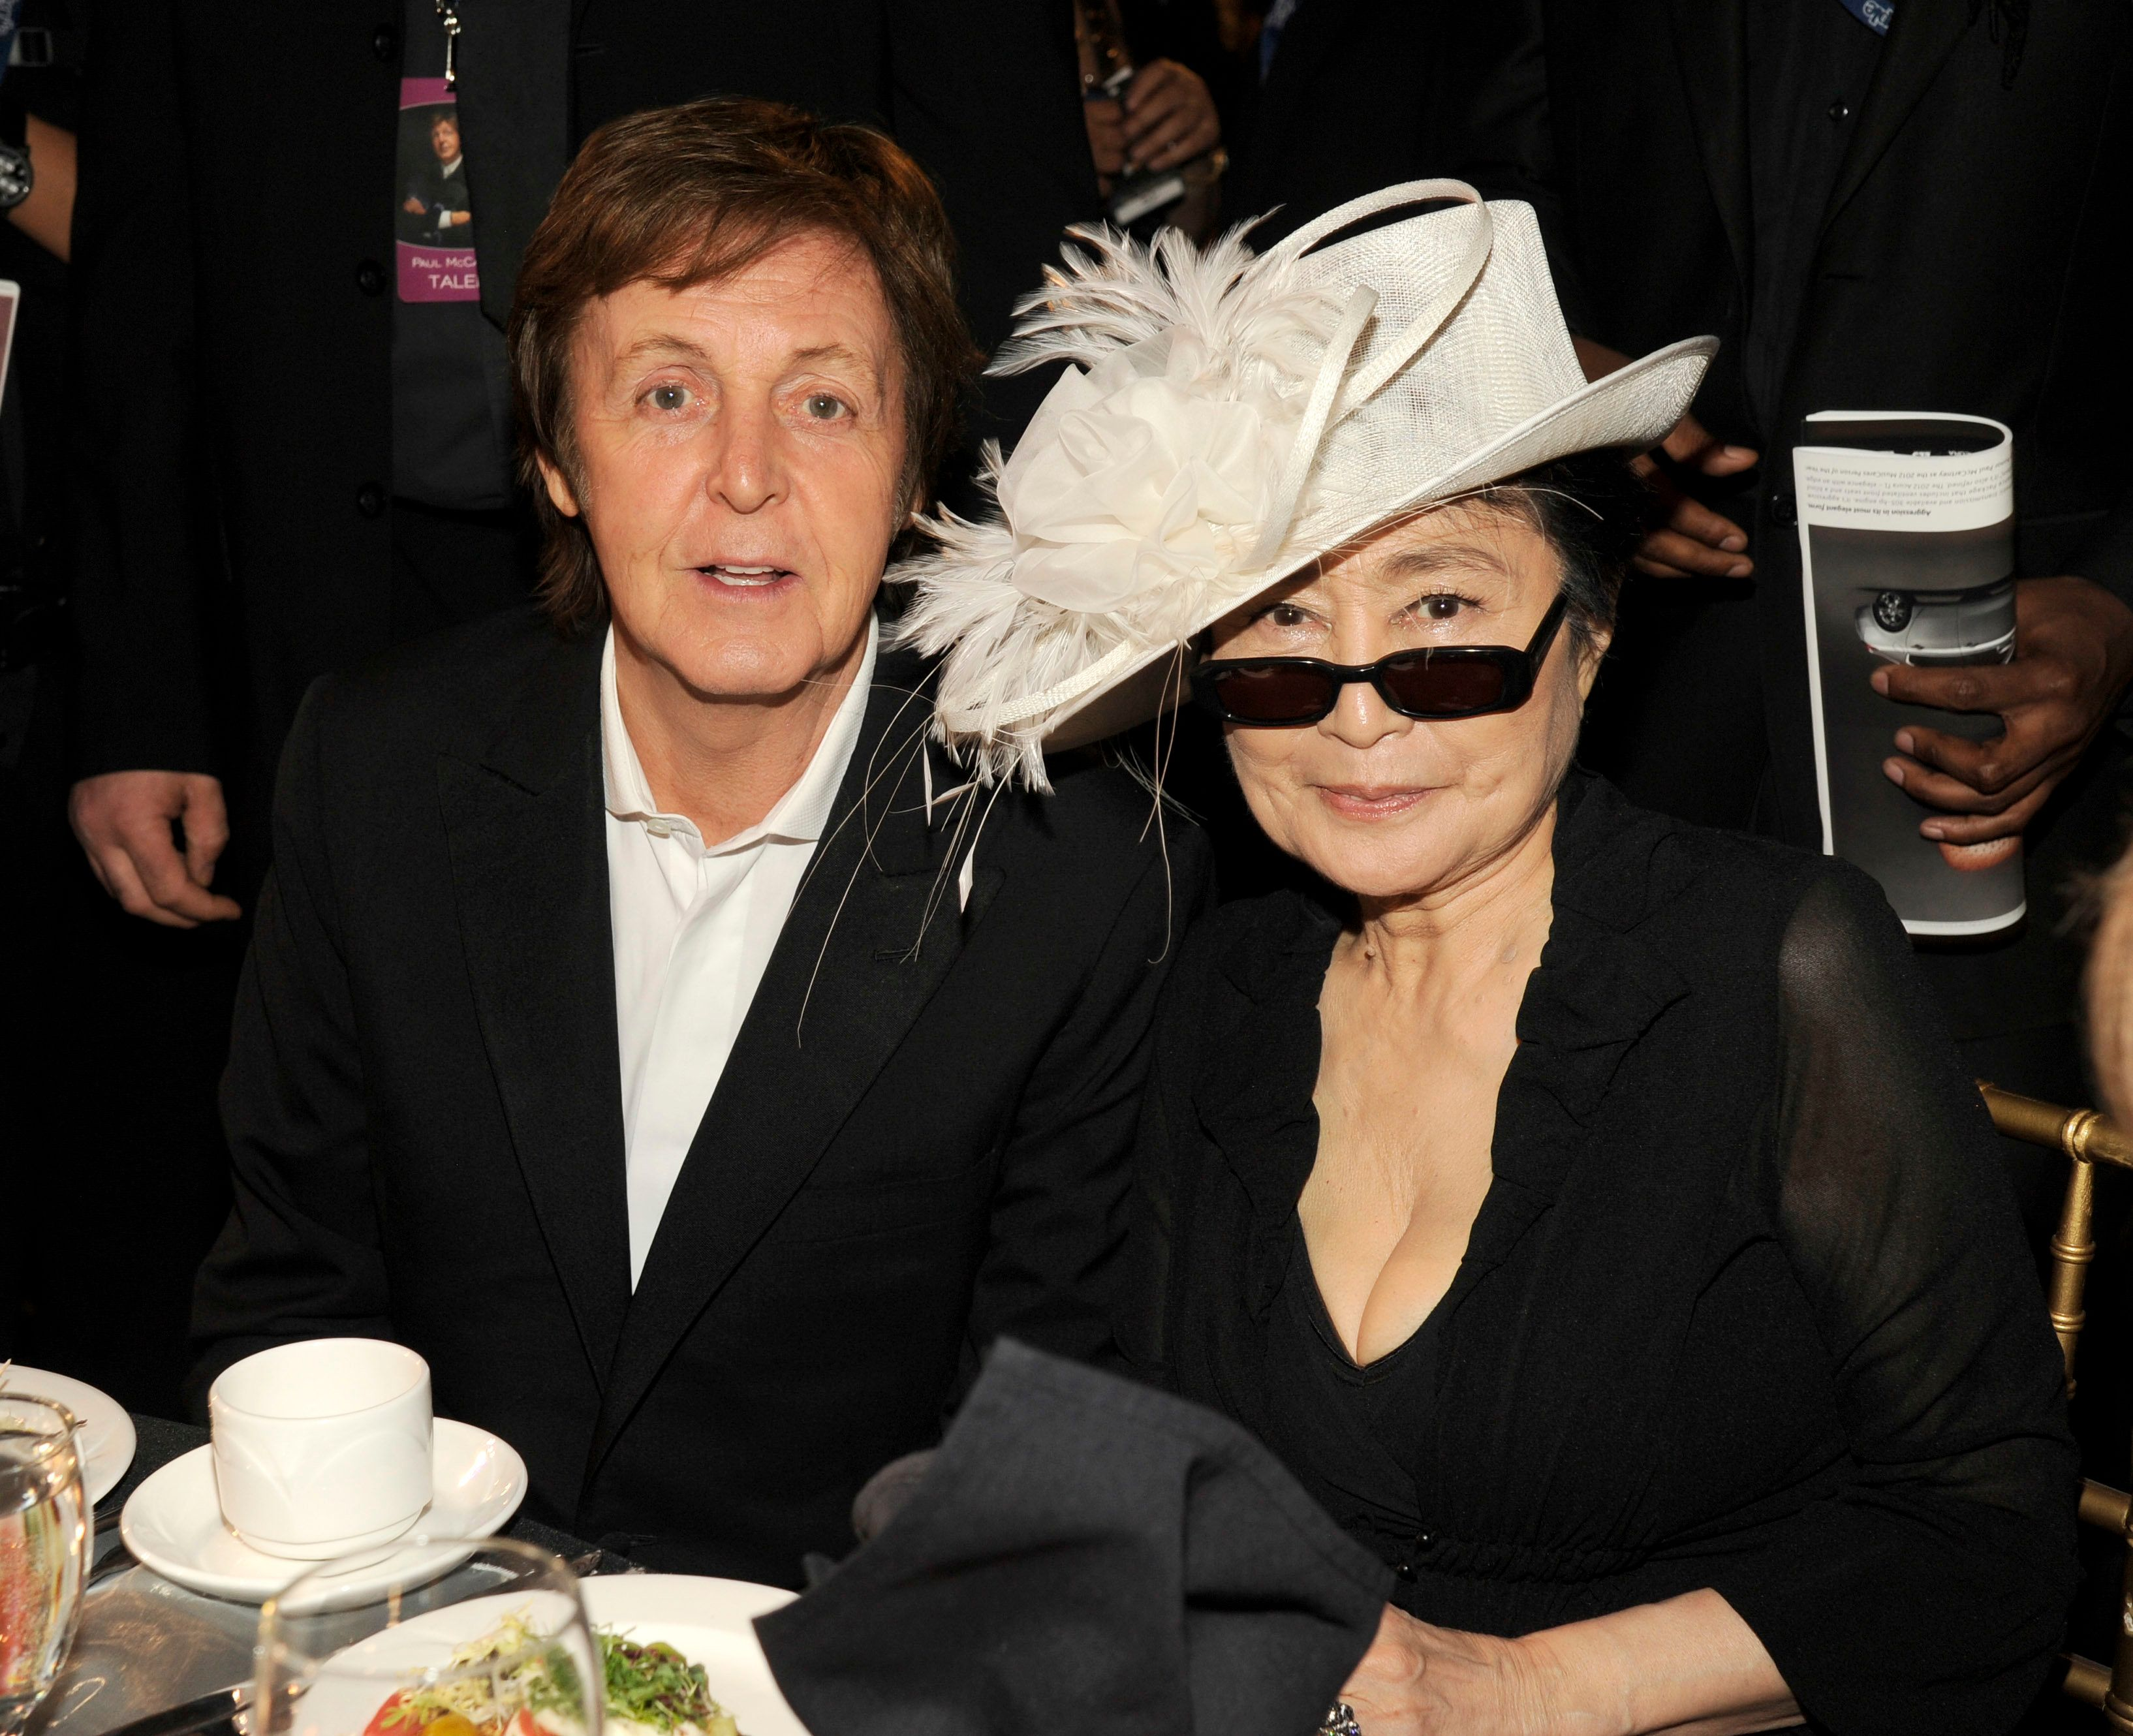 LOS ANGELES, CA - FEBRUARY 10: Honoree Sir Paul McCartney and Yoko Ono attend The 2012 MusiCares Person Of The Year Gala Honoring Paul McCartney at Los Angeles Convention Center on February 10, 2012 in Los Angeles, California. (Photo by Kevin Mazur/WireImage)